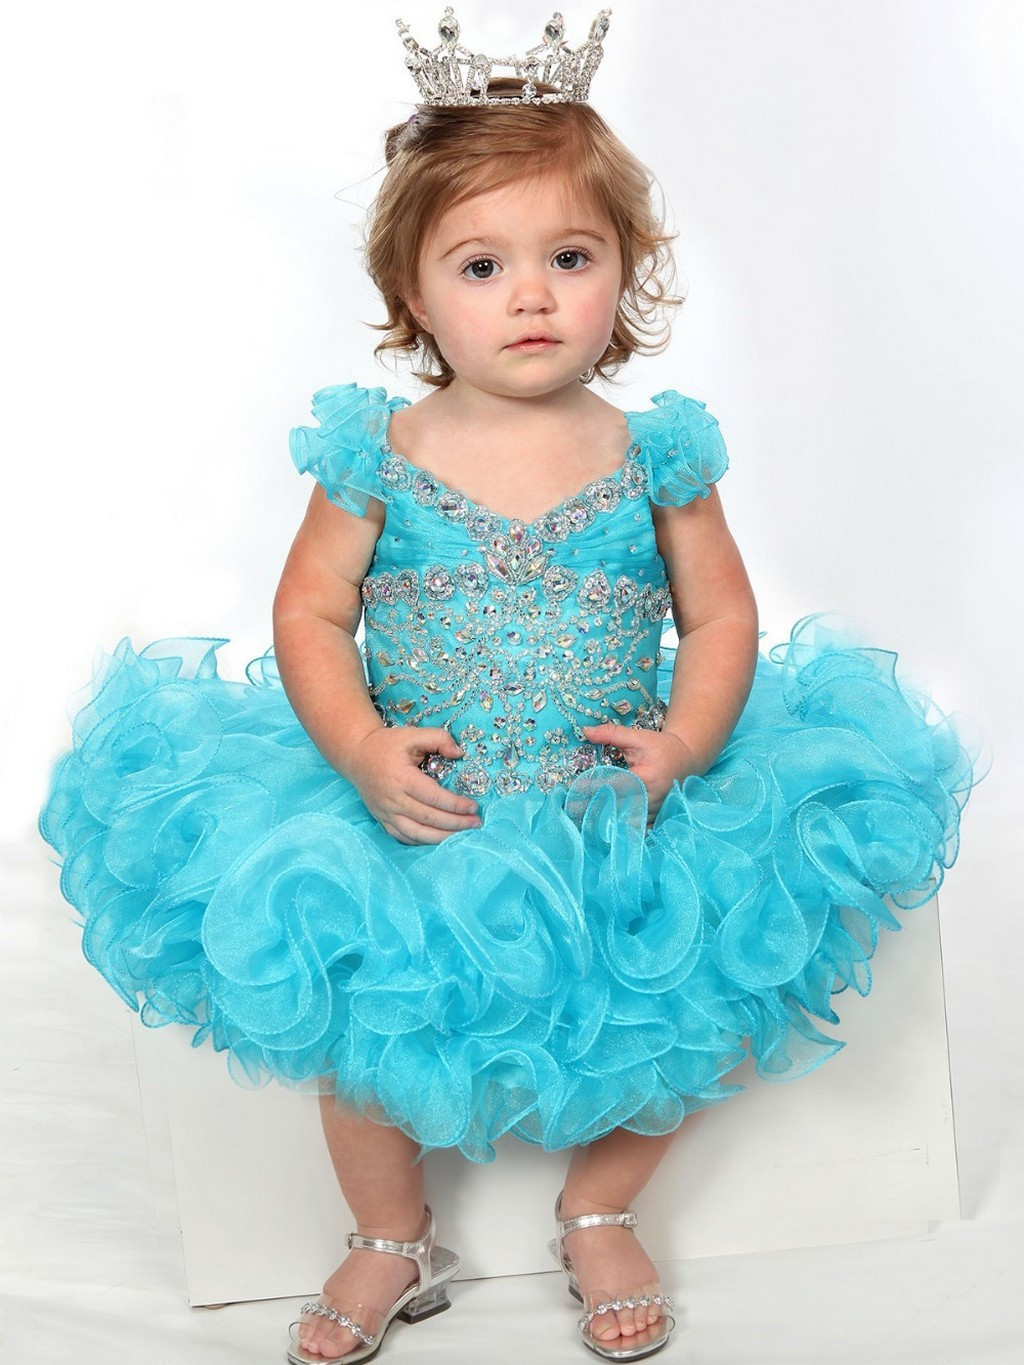 Baby Girl Dresses Unique Baby Dress 1 Year Old 2017 Fashion Trends Dresses ask Of Great 42 Pics Baby Girl Dresses